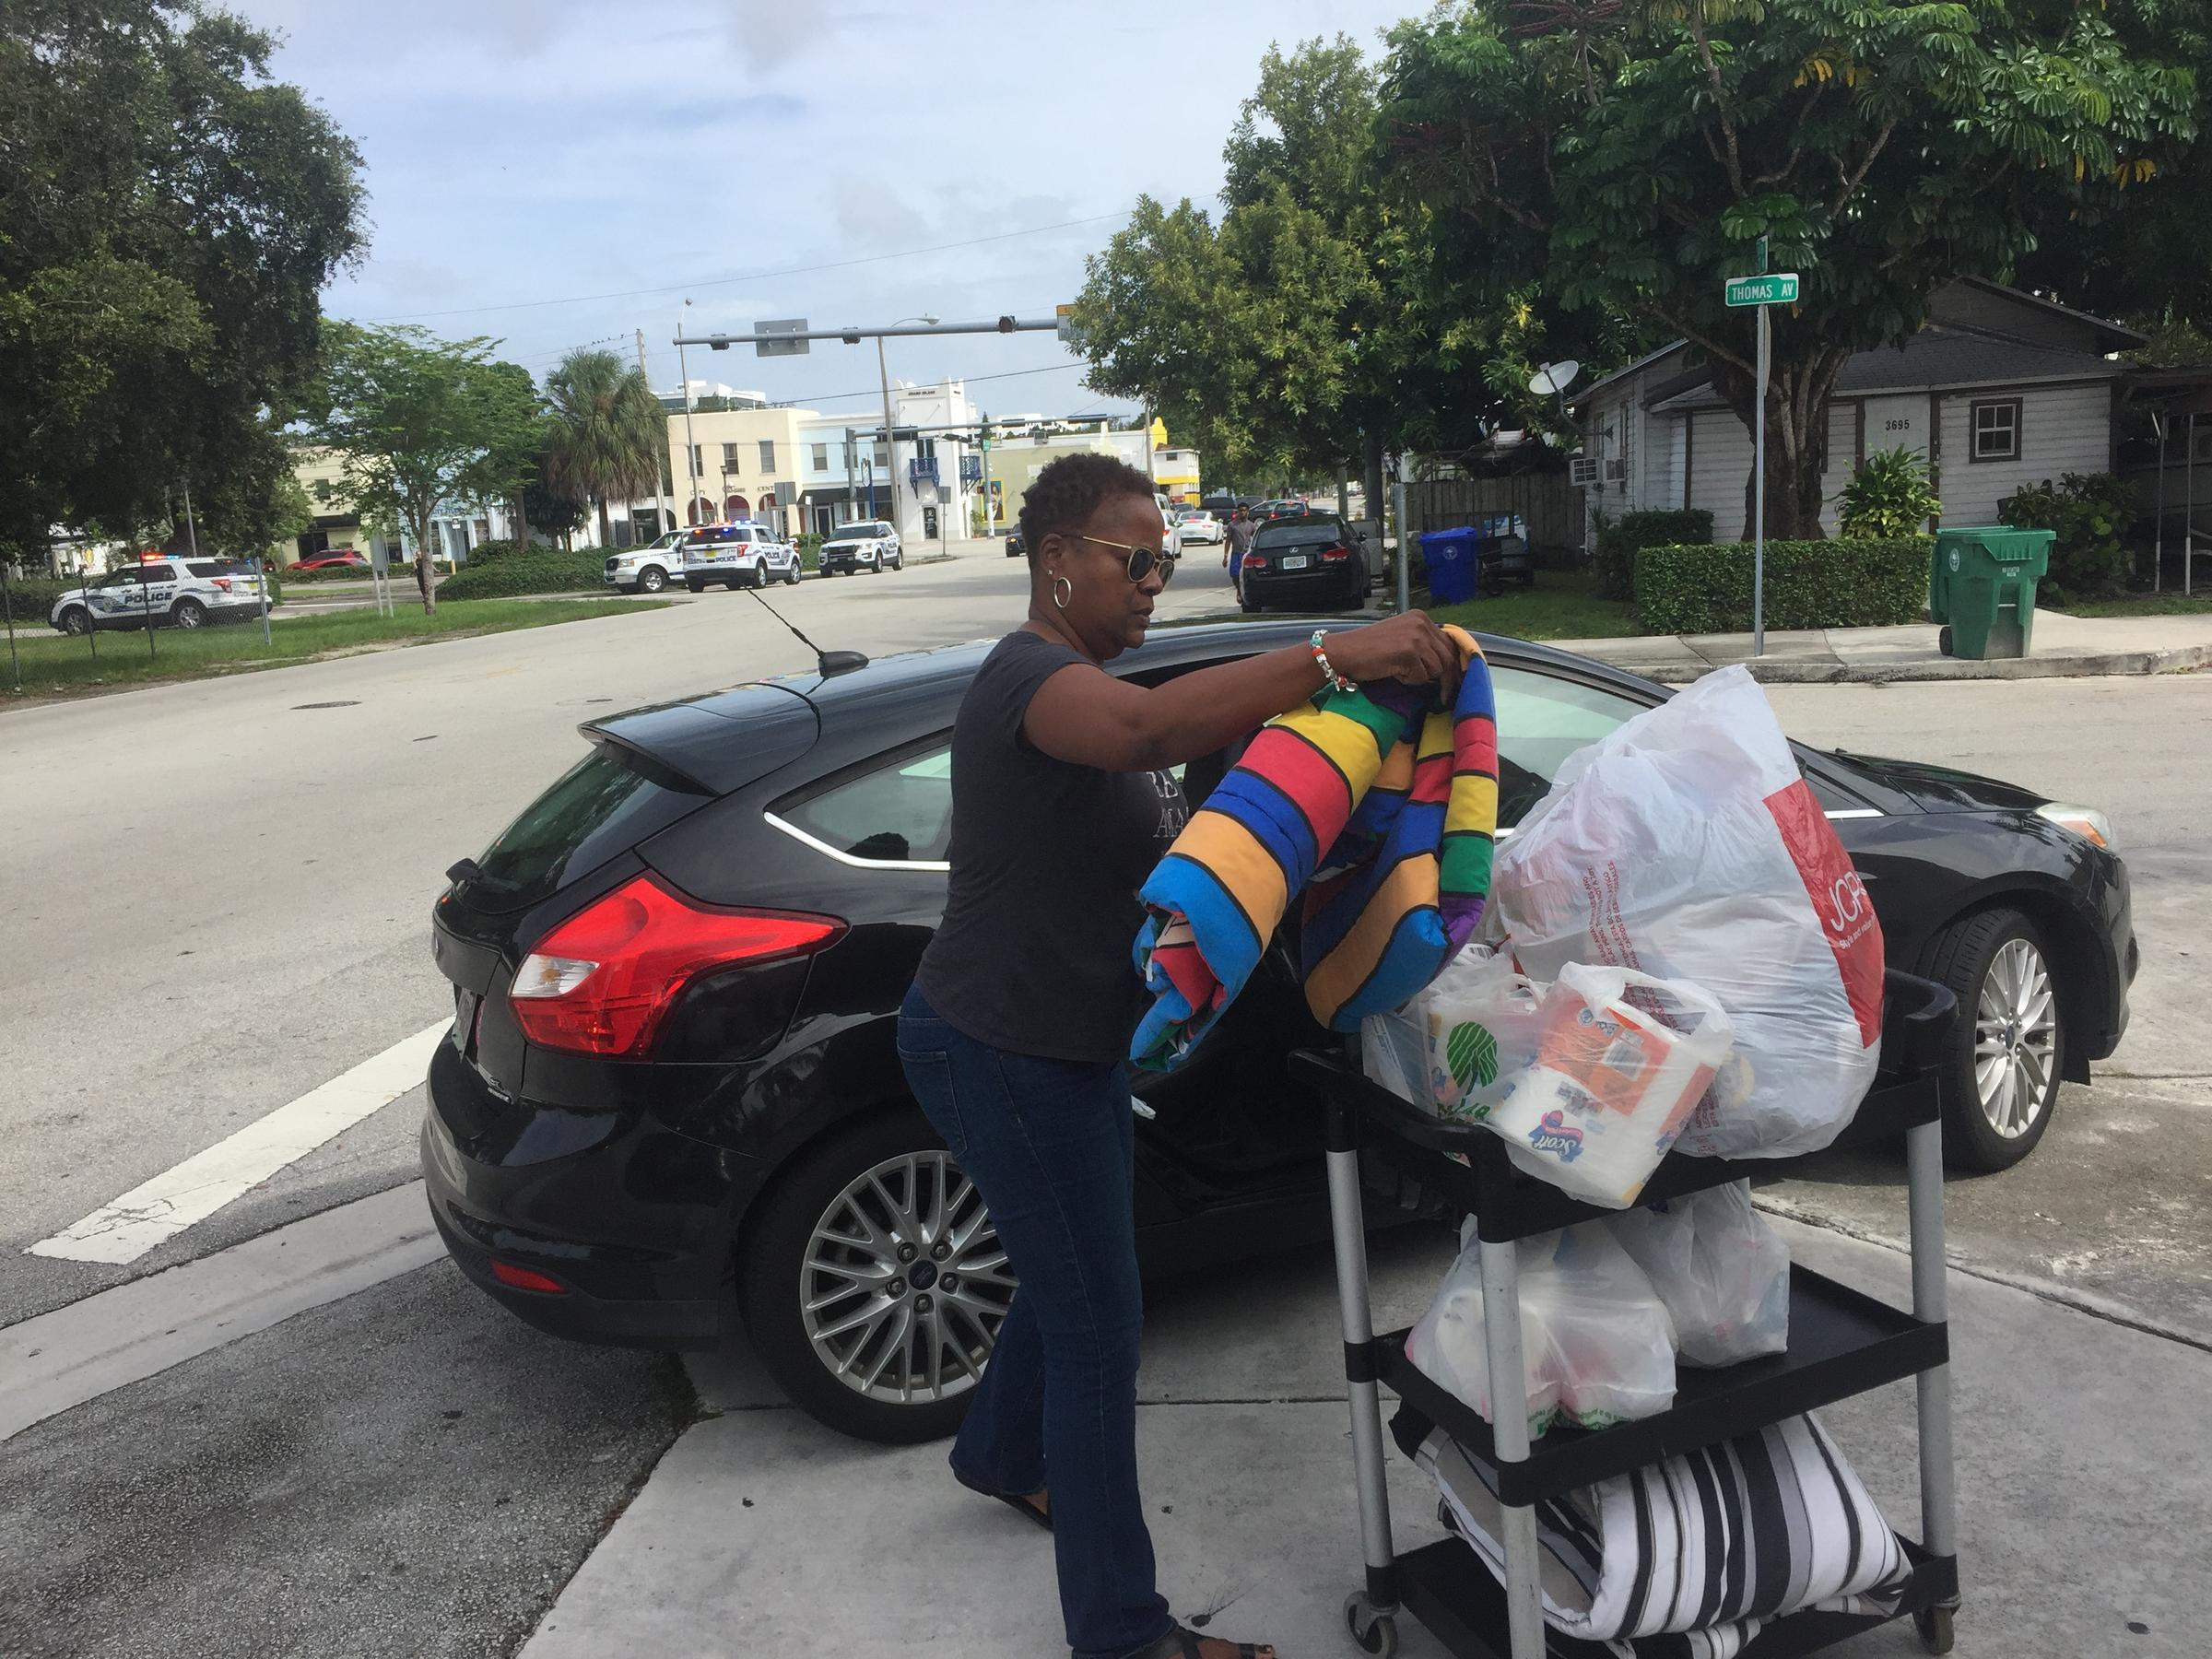 Greater St. Paul AME Church parishioner Pam Jennings unloads clothes and blankets for Hurricane Dorian victims in the Bahamas